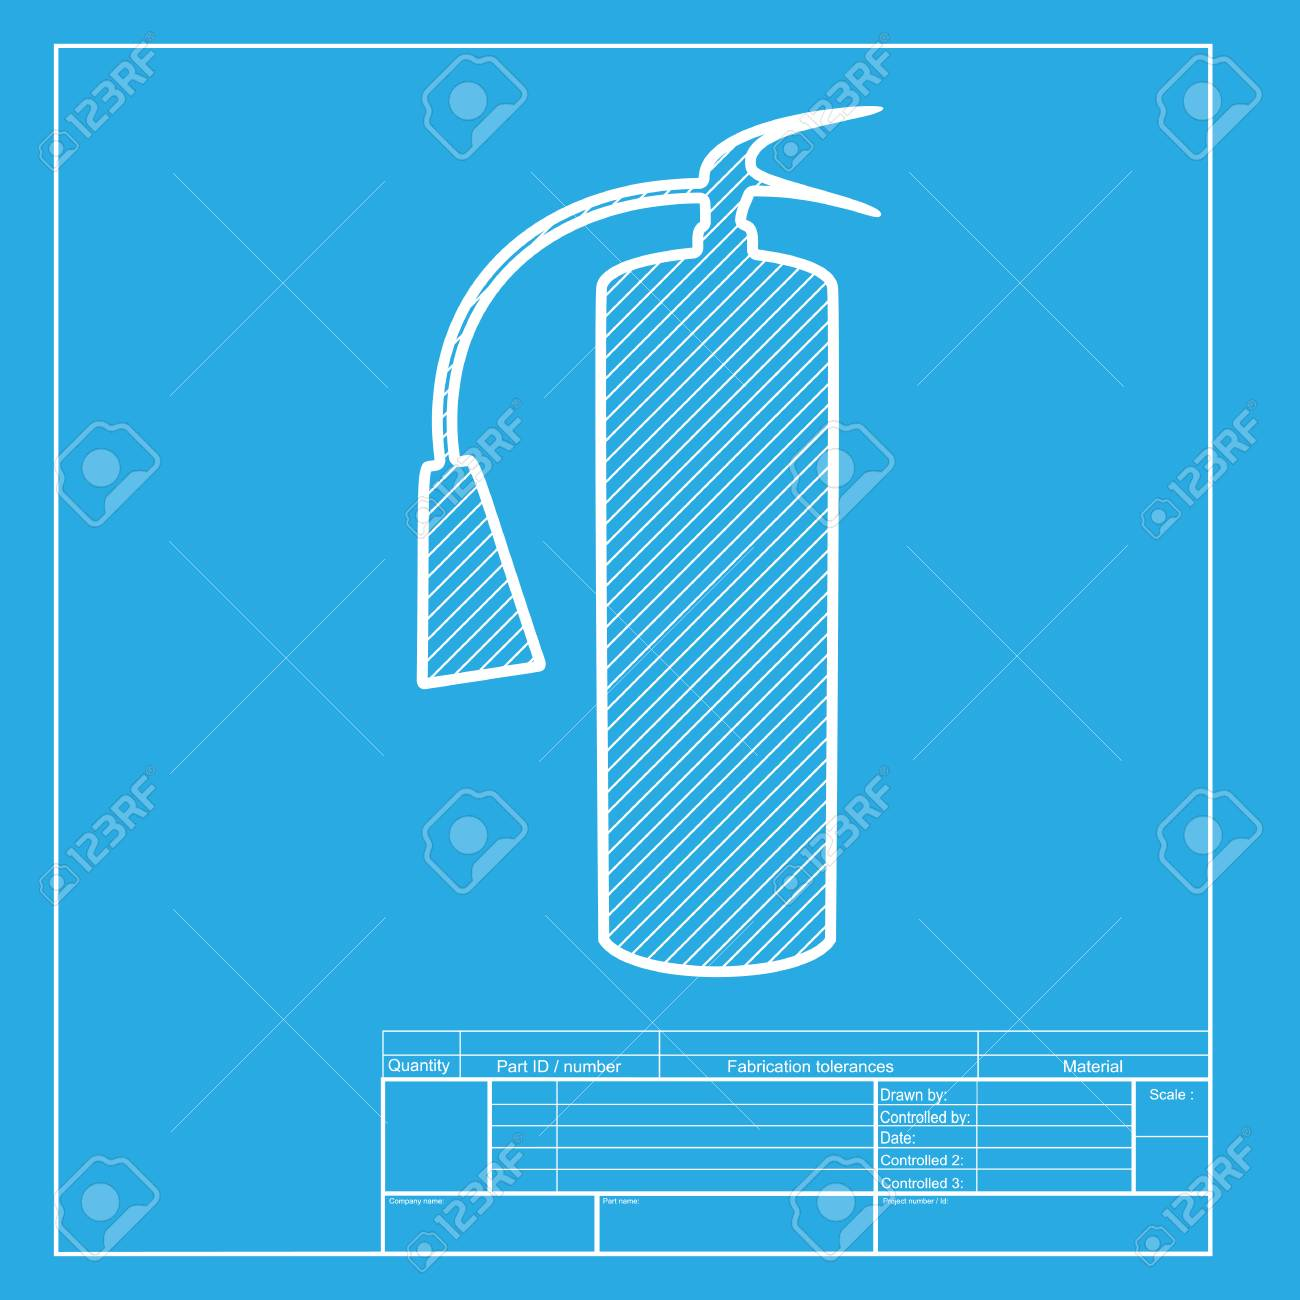 fire extinguisher sign white section of icon on blueprint template